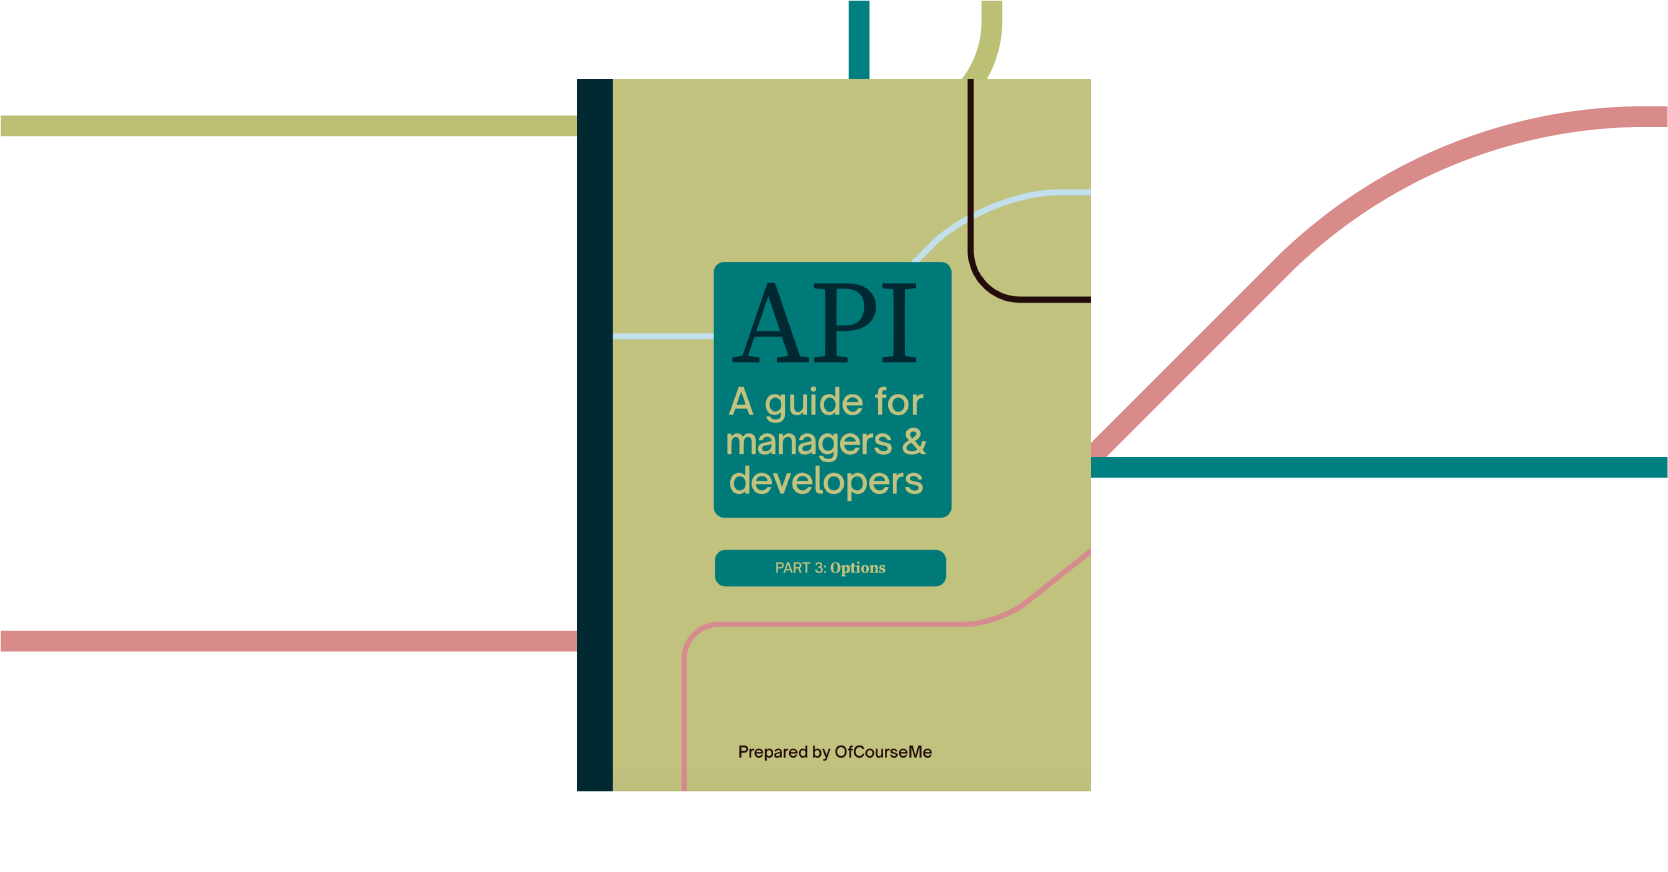 API: a guide for managers & developers part 3 – Options